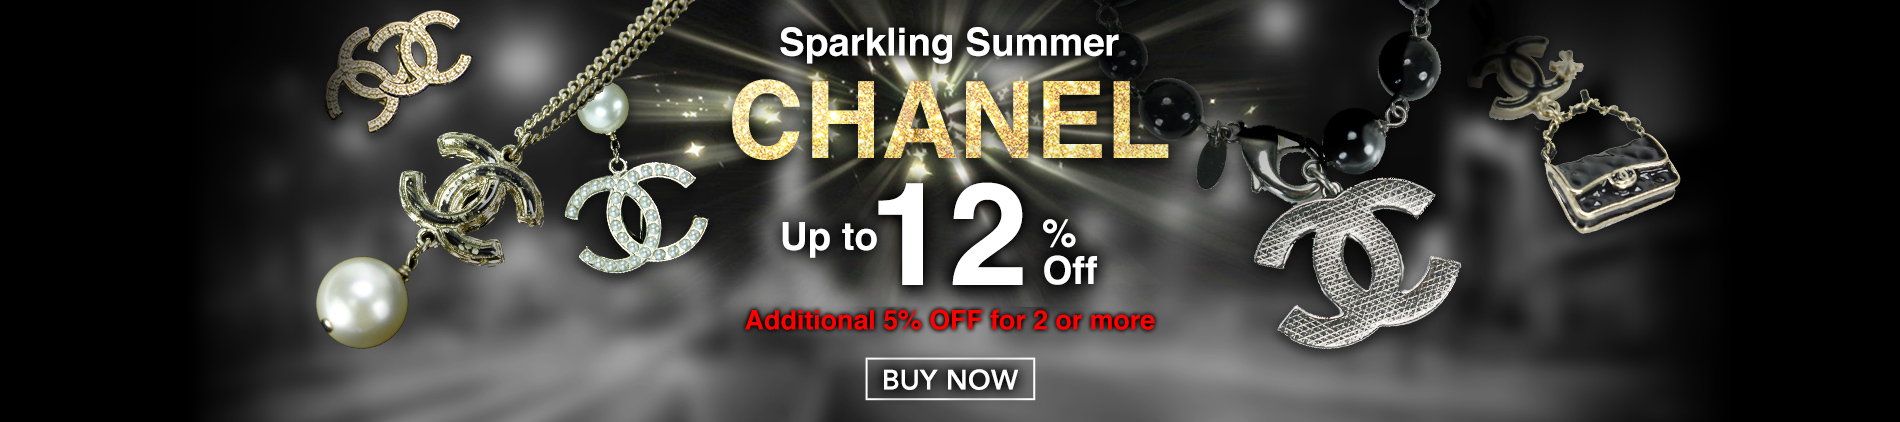 Chanel discount